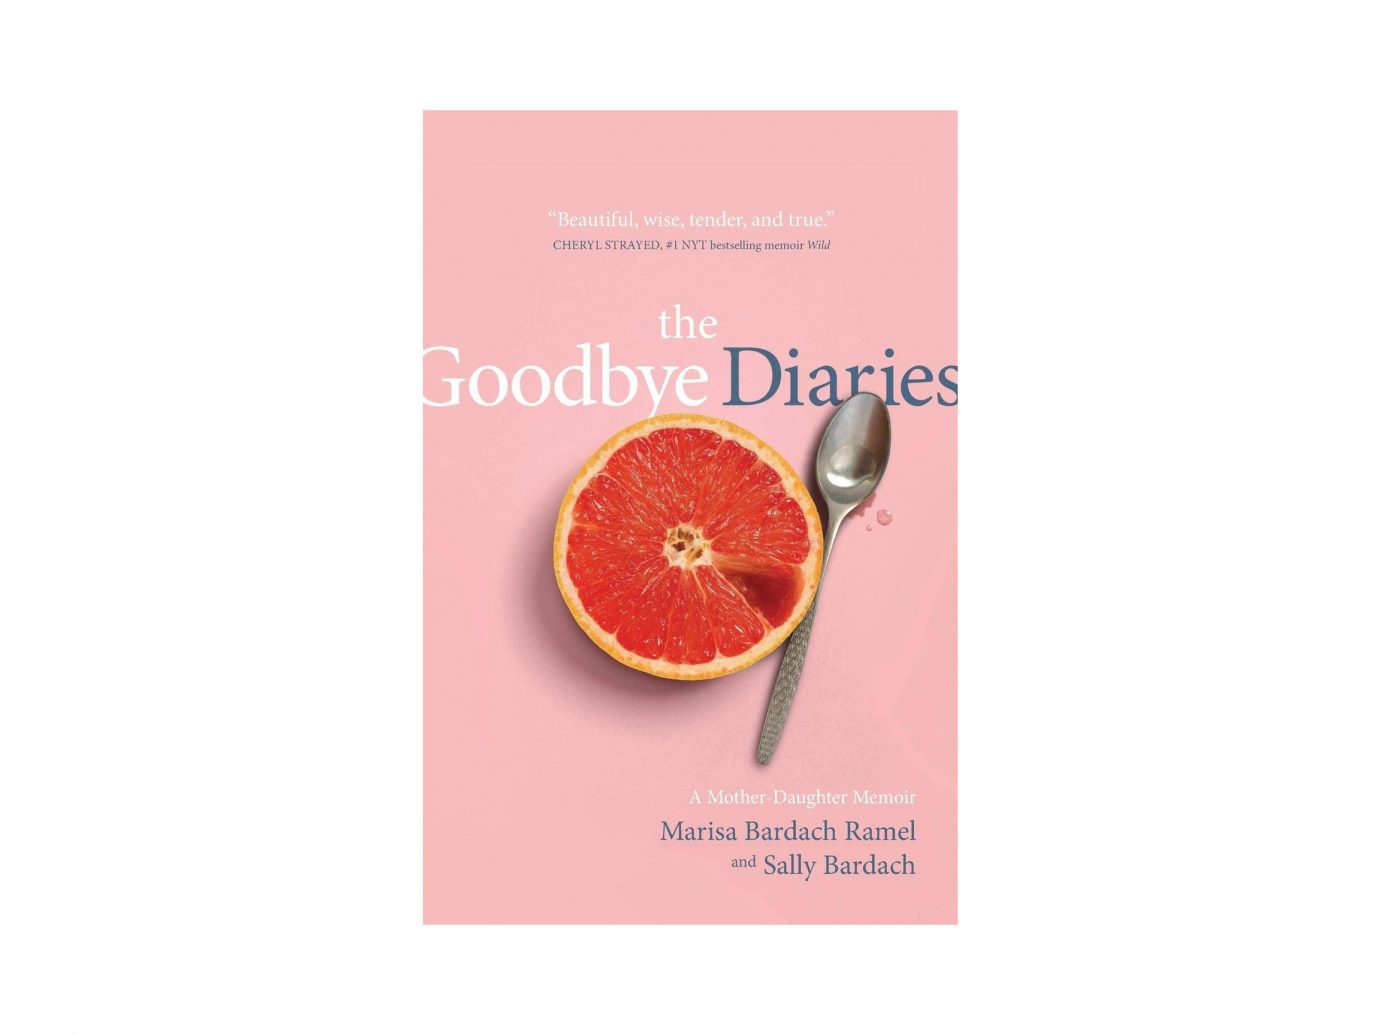 The Goodbye Diaries: A Mother-Daughter Memoir